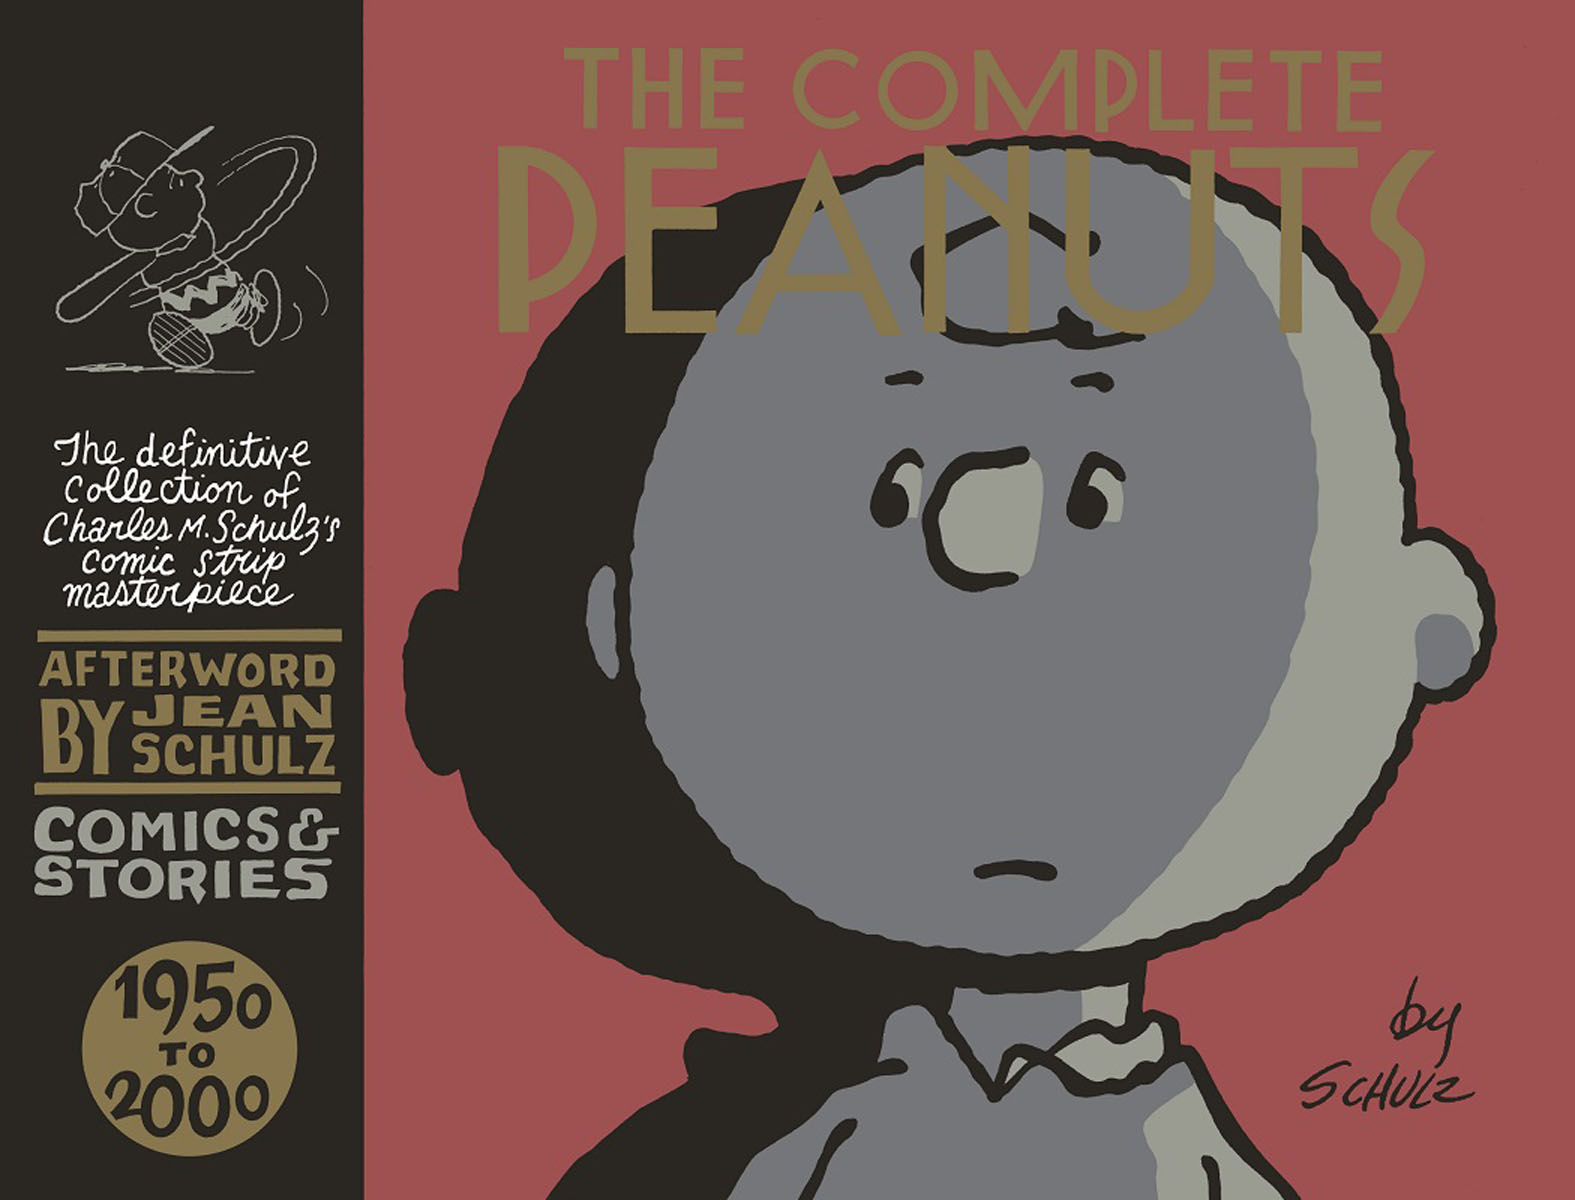 The Complete Peanuts: Comics & Stories Vol. 26 the complete stories of truman capote